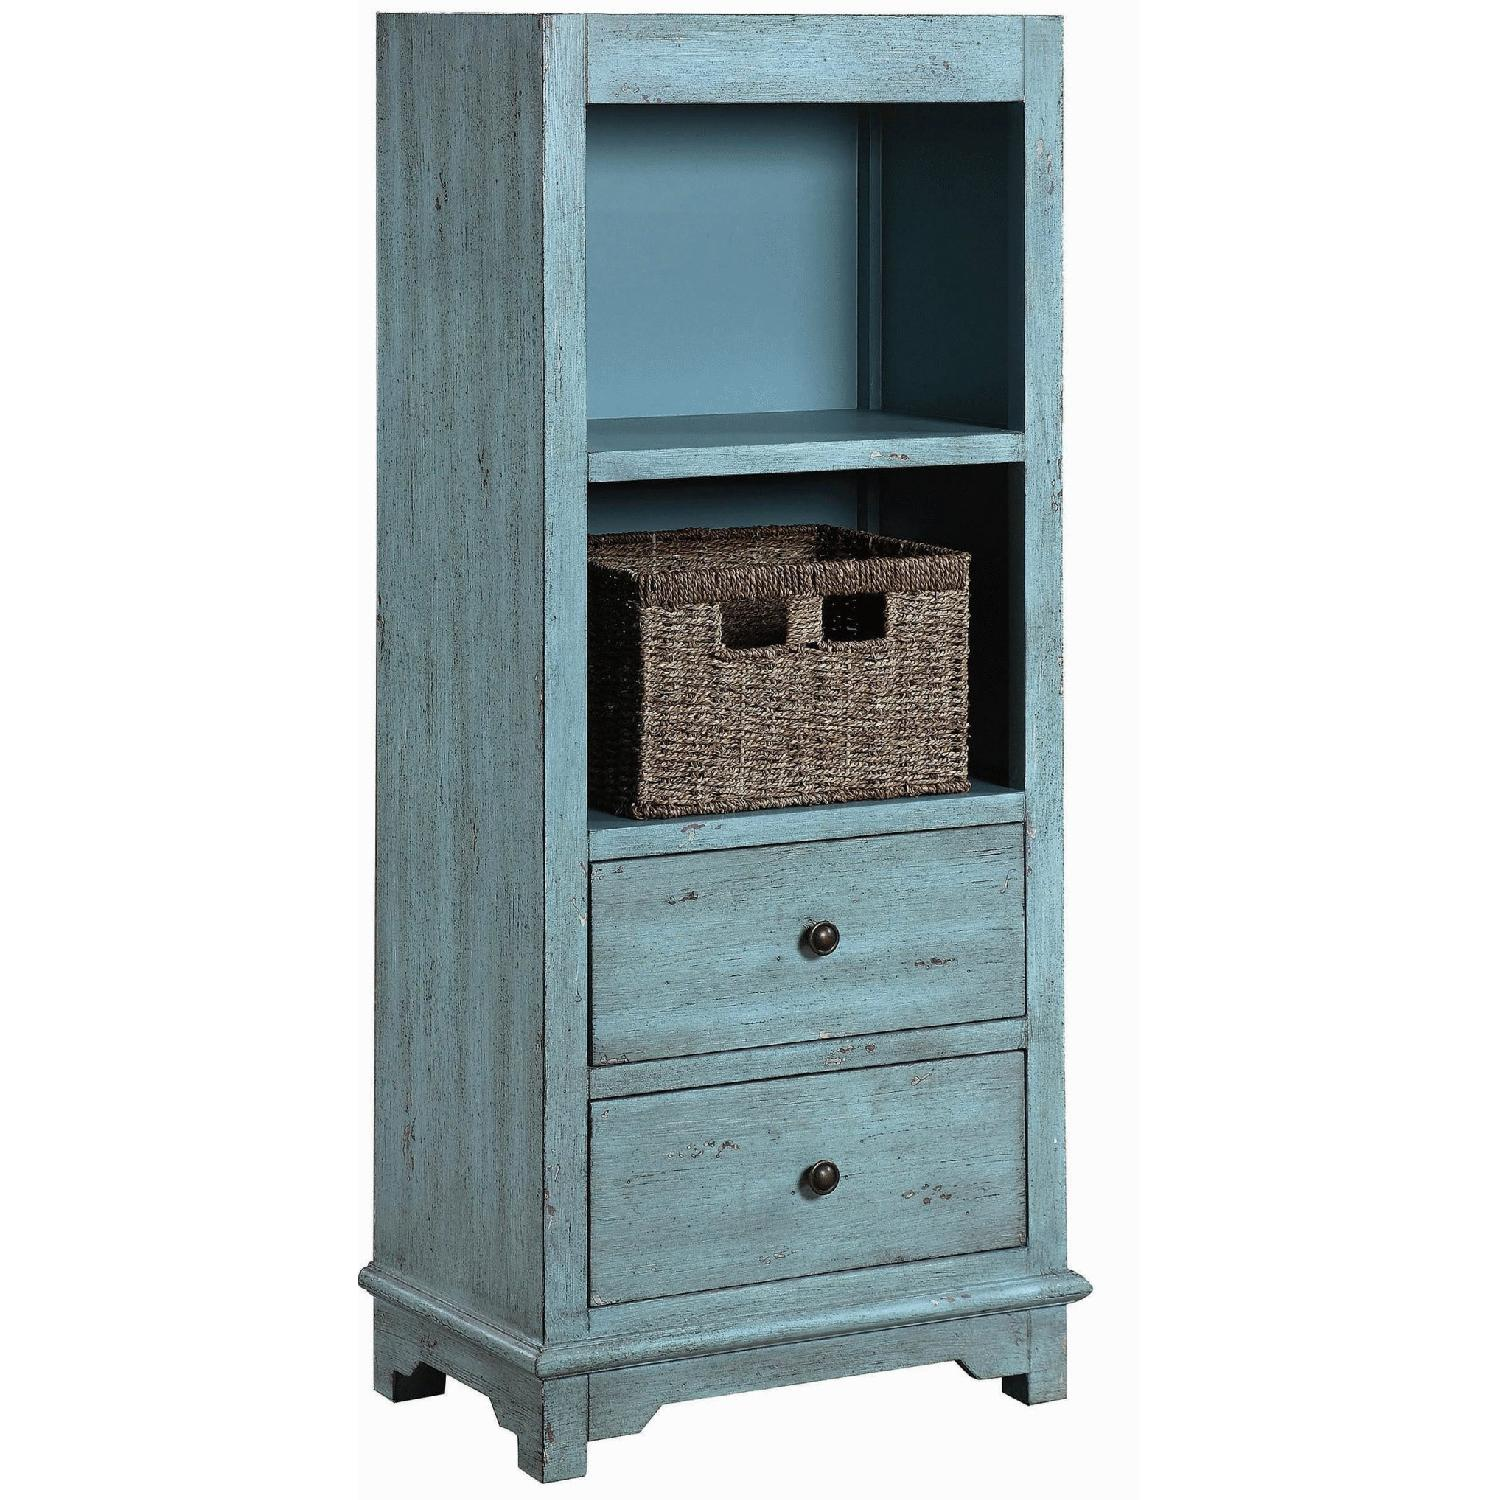 Industrial Style Curio Cabinet in Grey Driftwood Finish - image-12